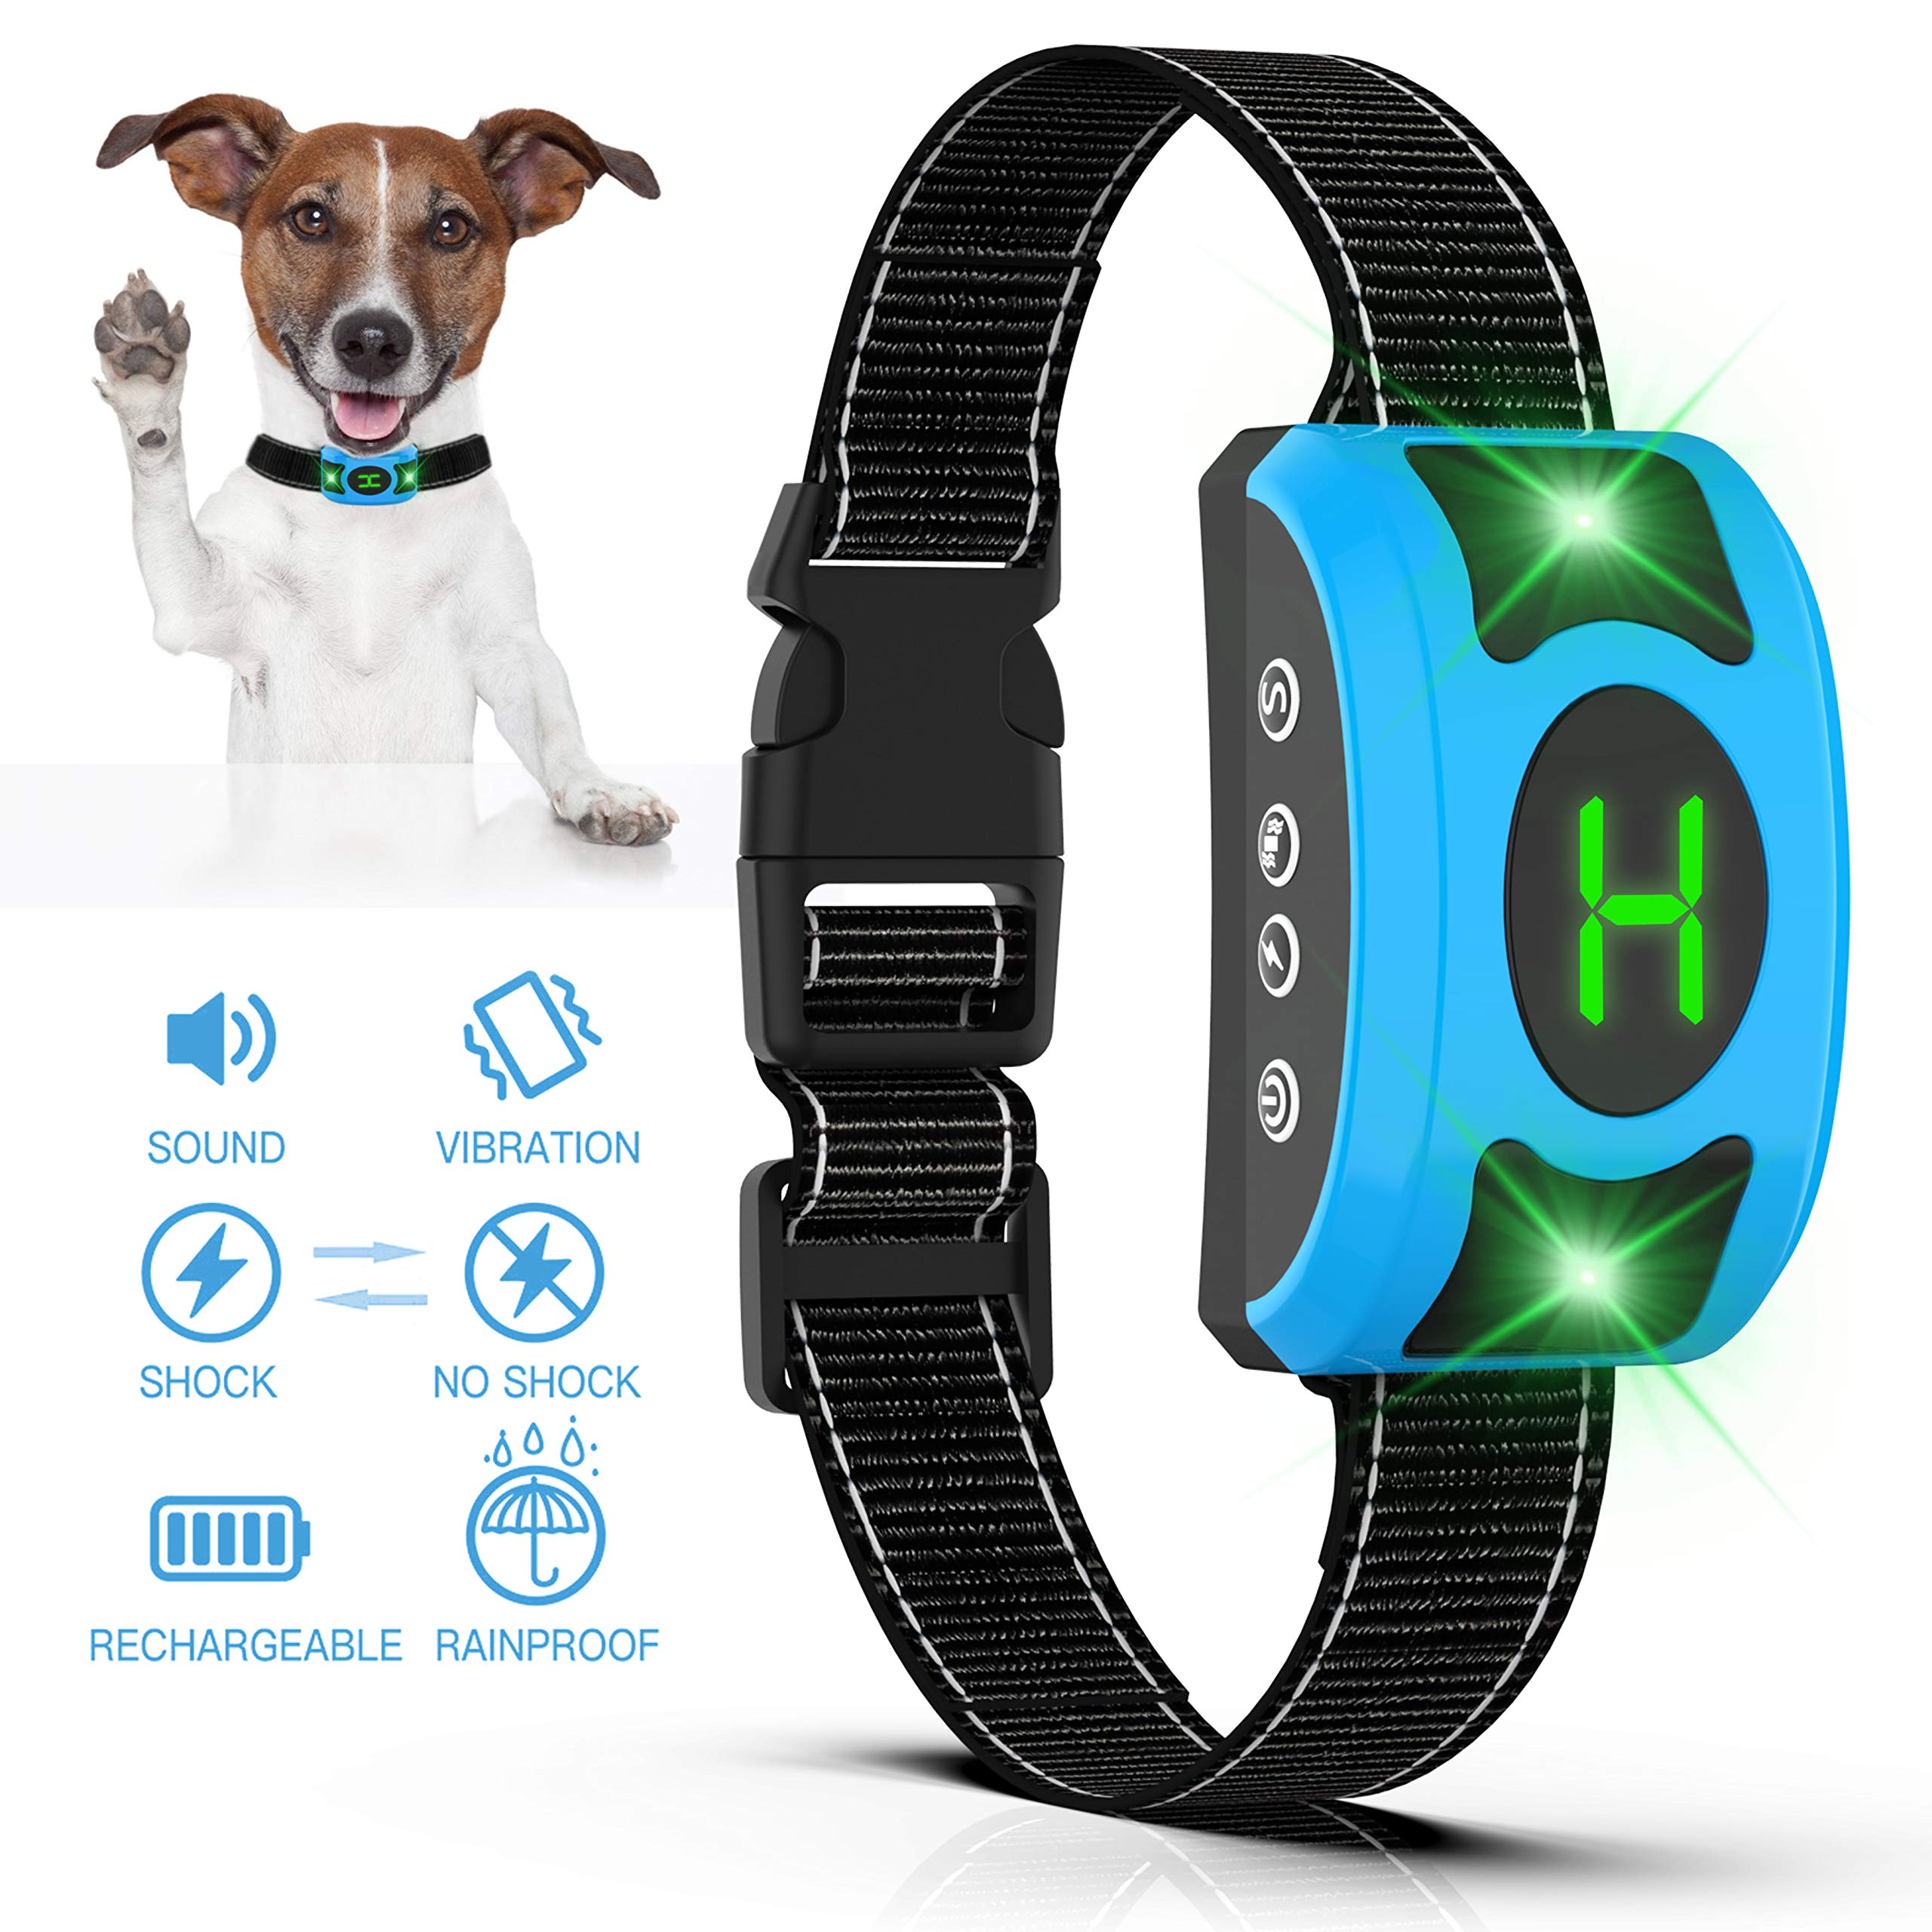 Rechargeable Anti Dog Bark Collar, Waterproof Smart Detection Train Large Medium Small Dogs Humanely with LED Breathing Light & Screen